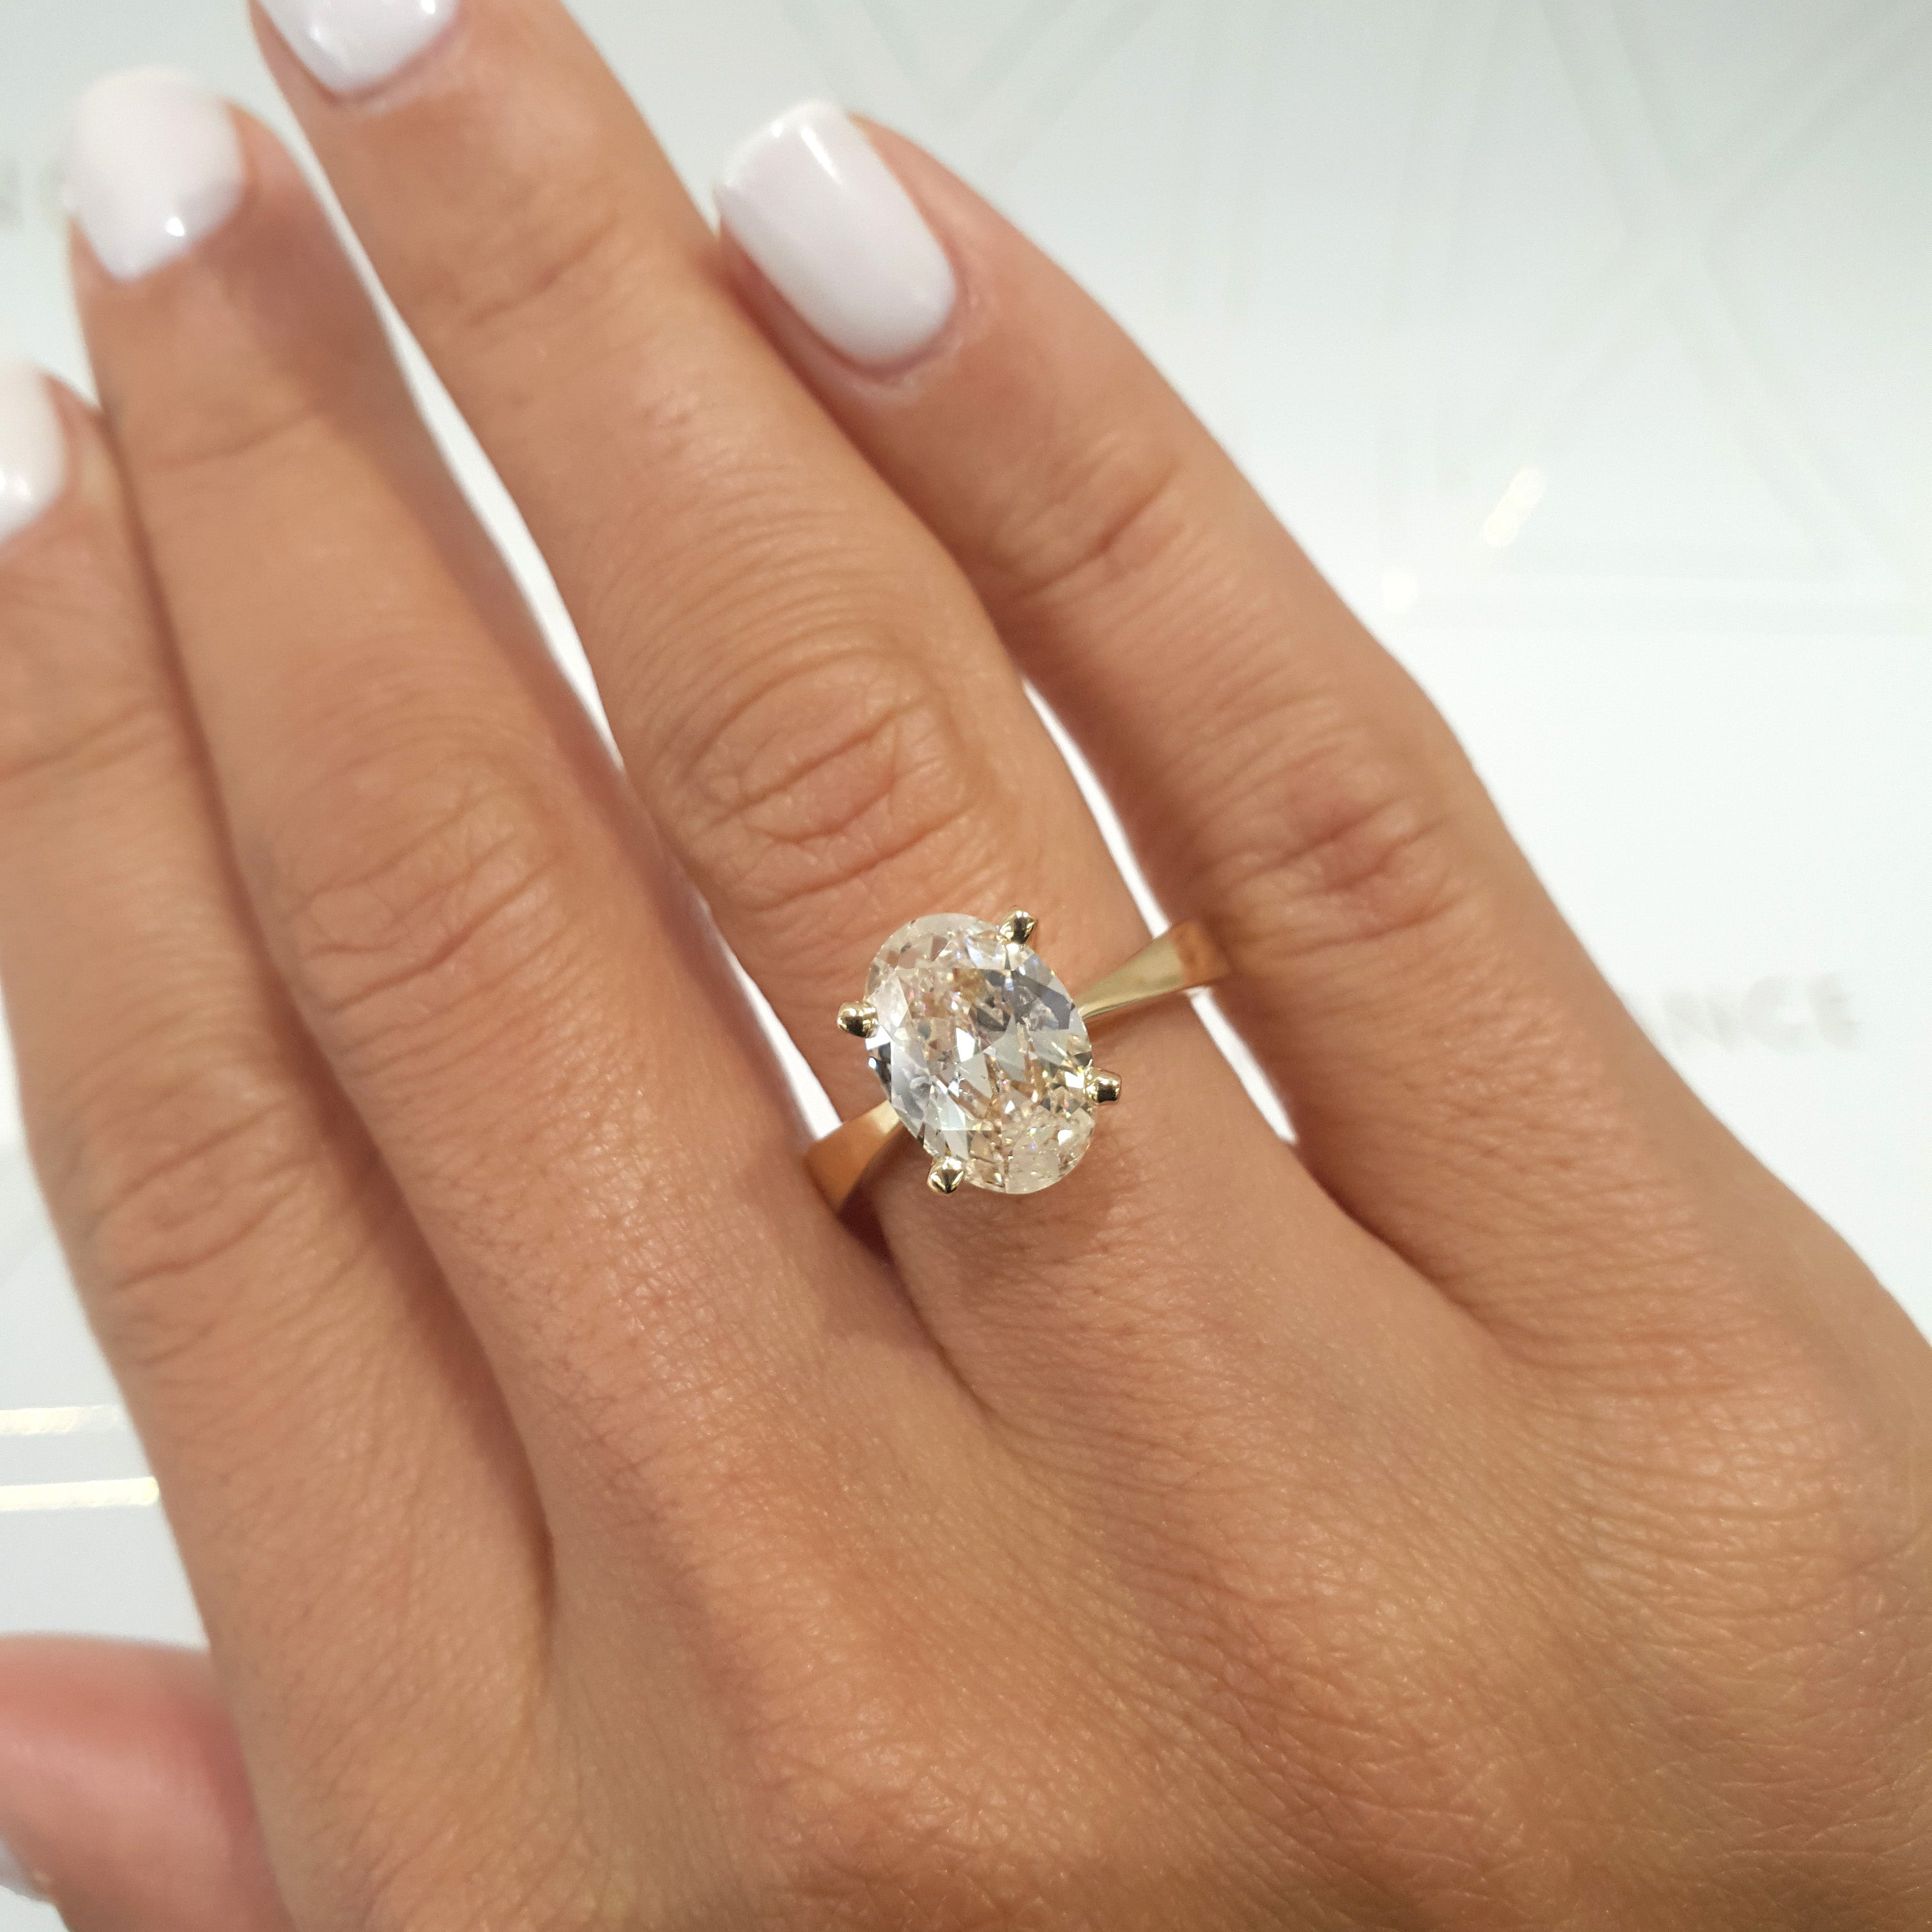 2 Carat Oval E VS2 - 14K Yellow Gold Solitaire Lab Grown ...